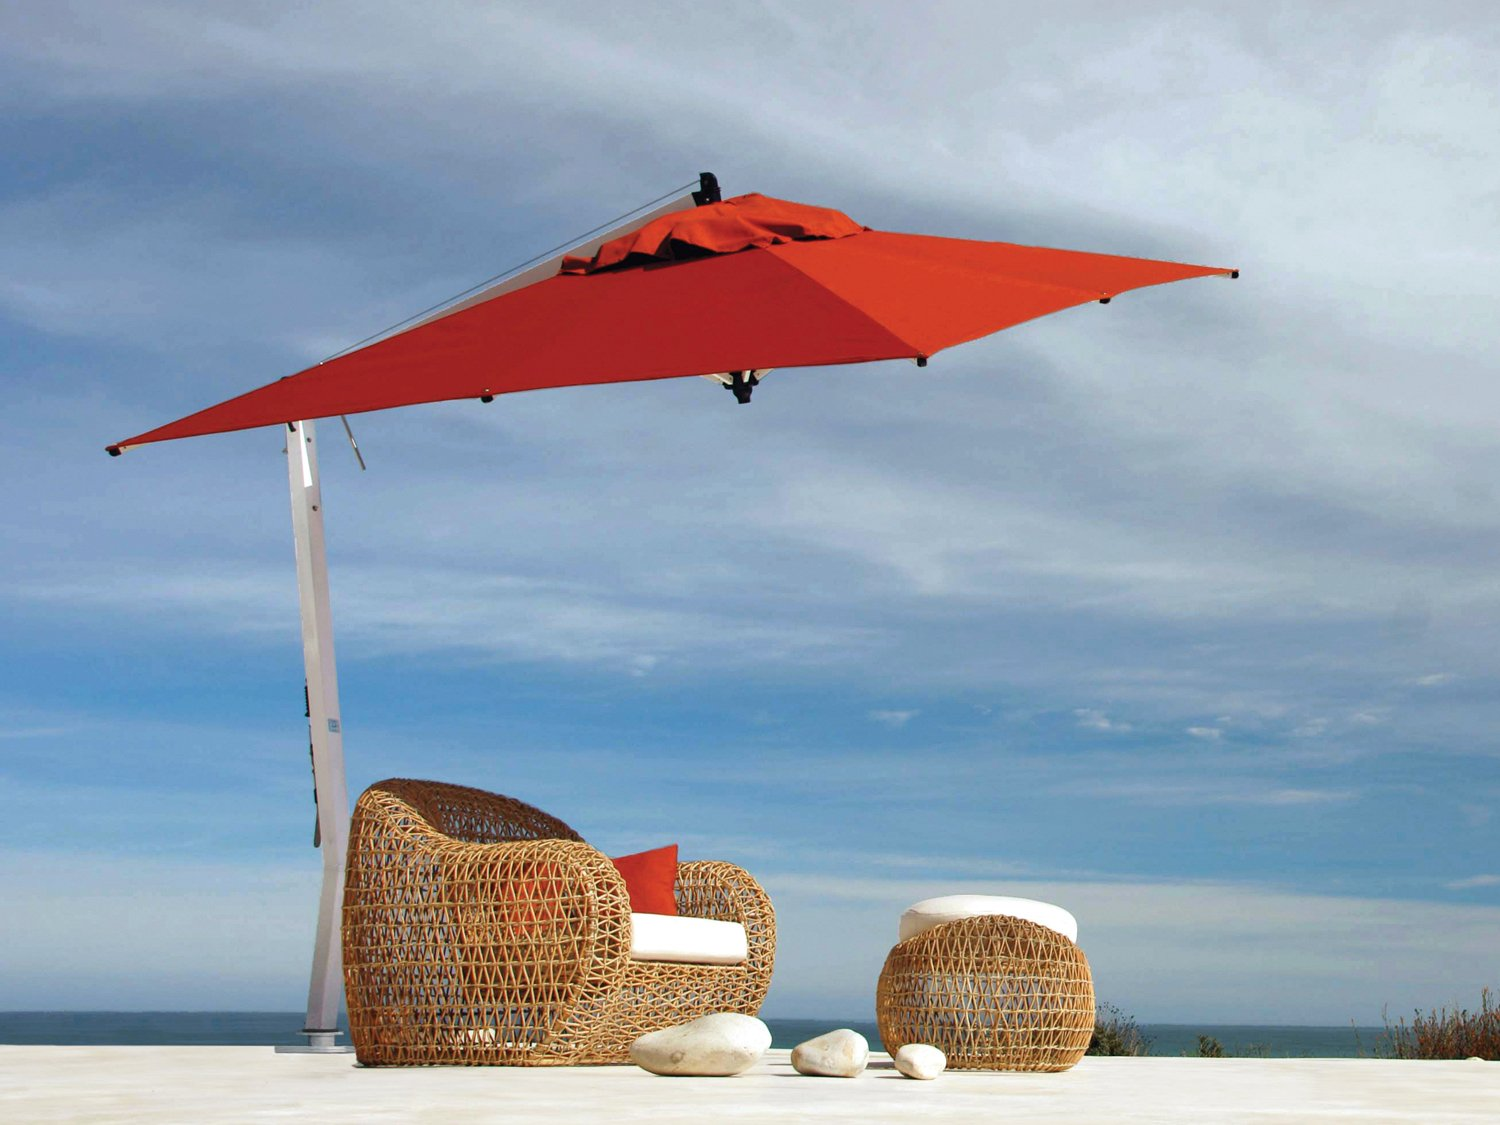 charming cantilever patio umbrella in red with white metal stand plus rattan sofa for inspiring patio decor ideas